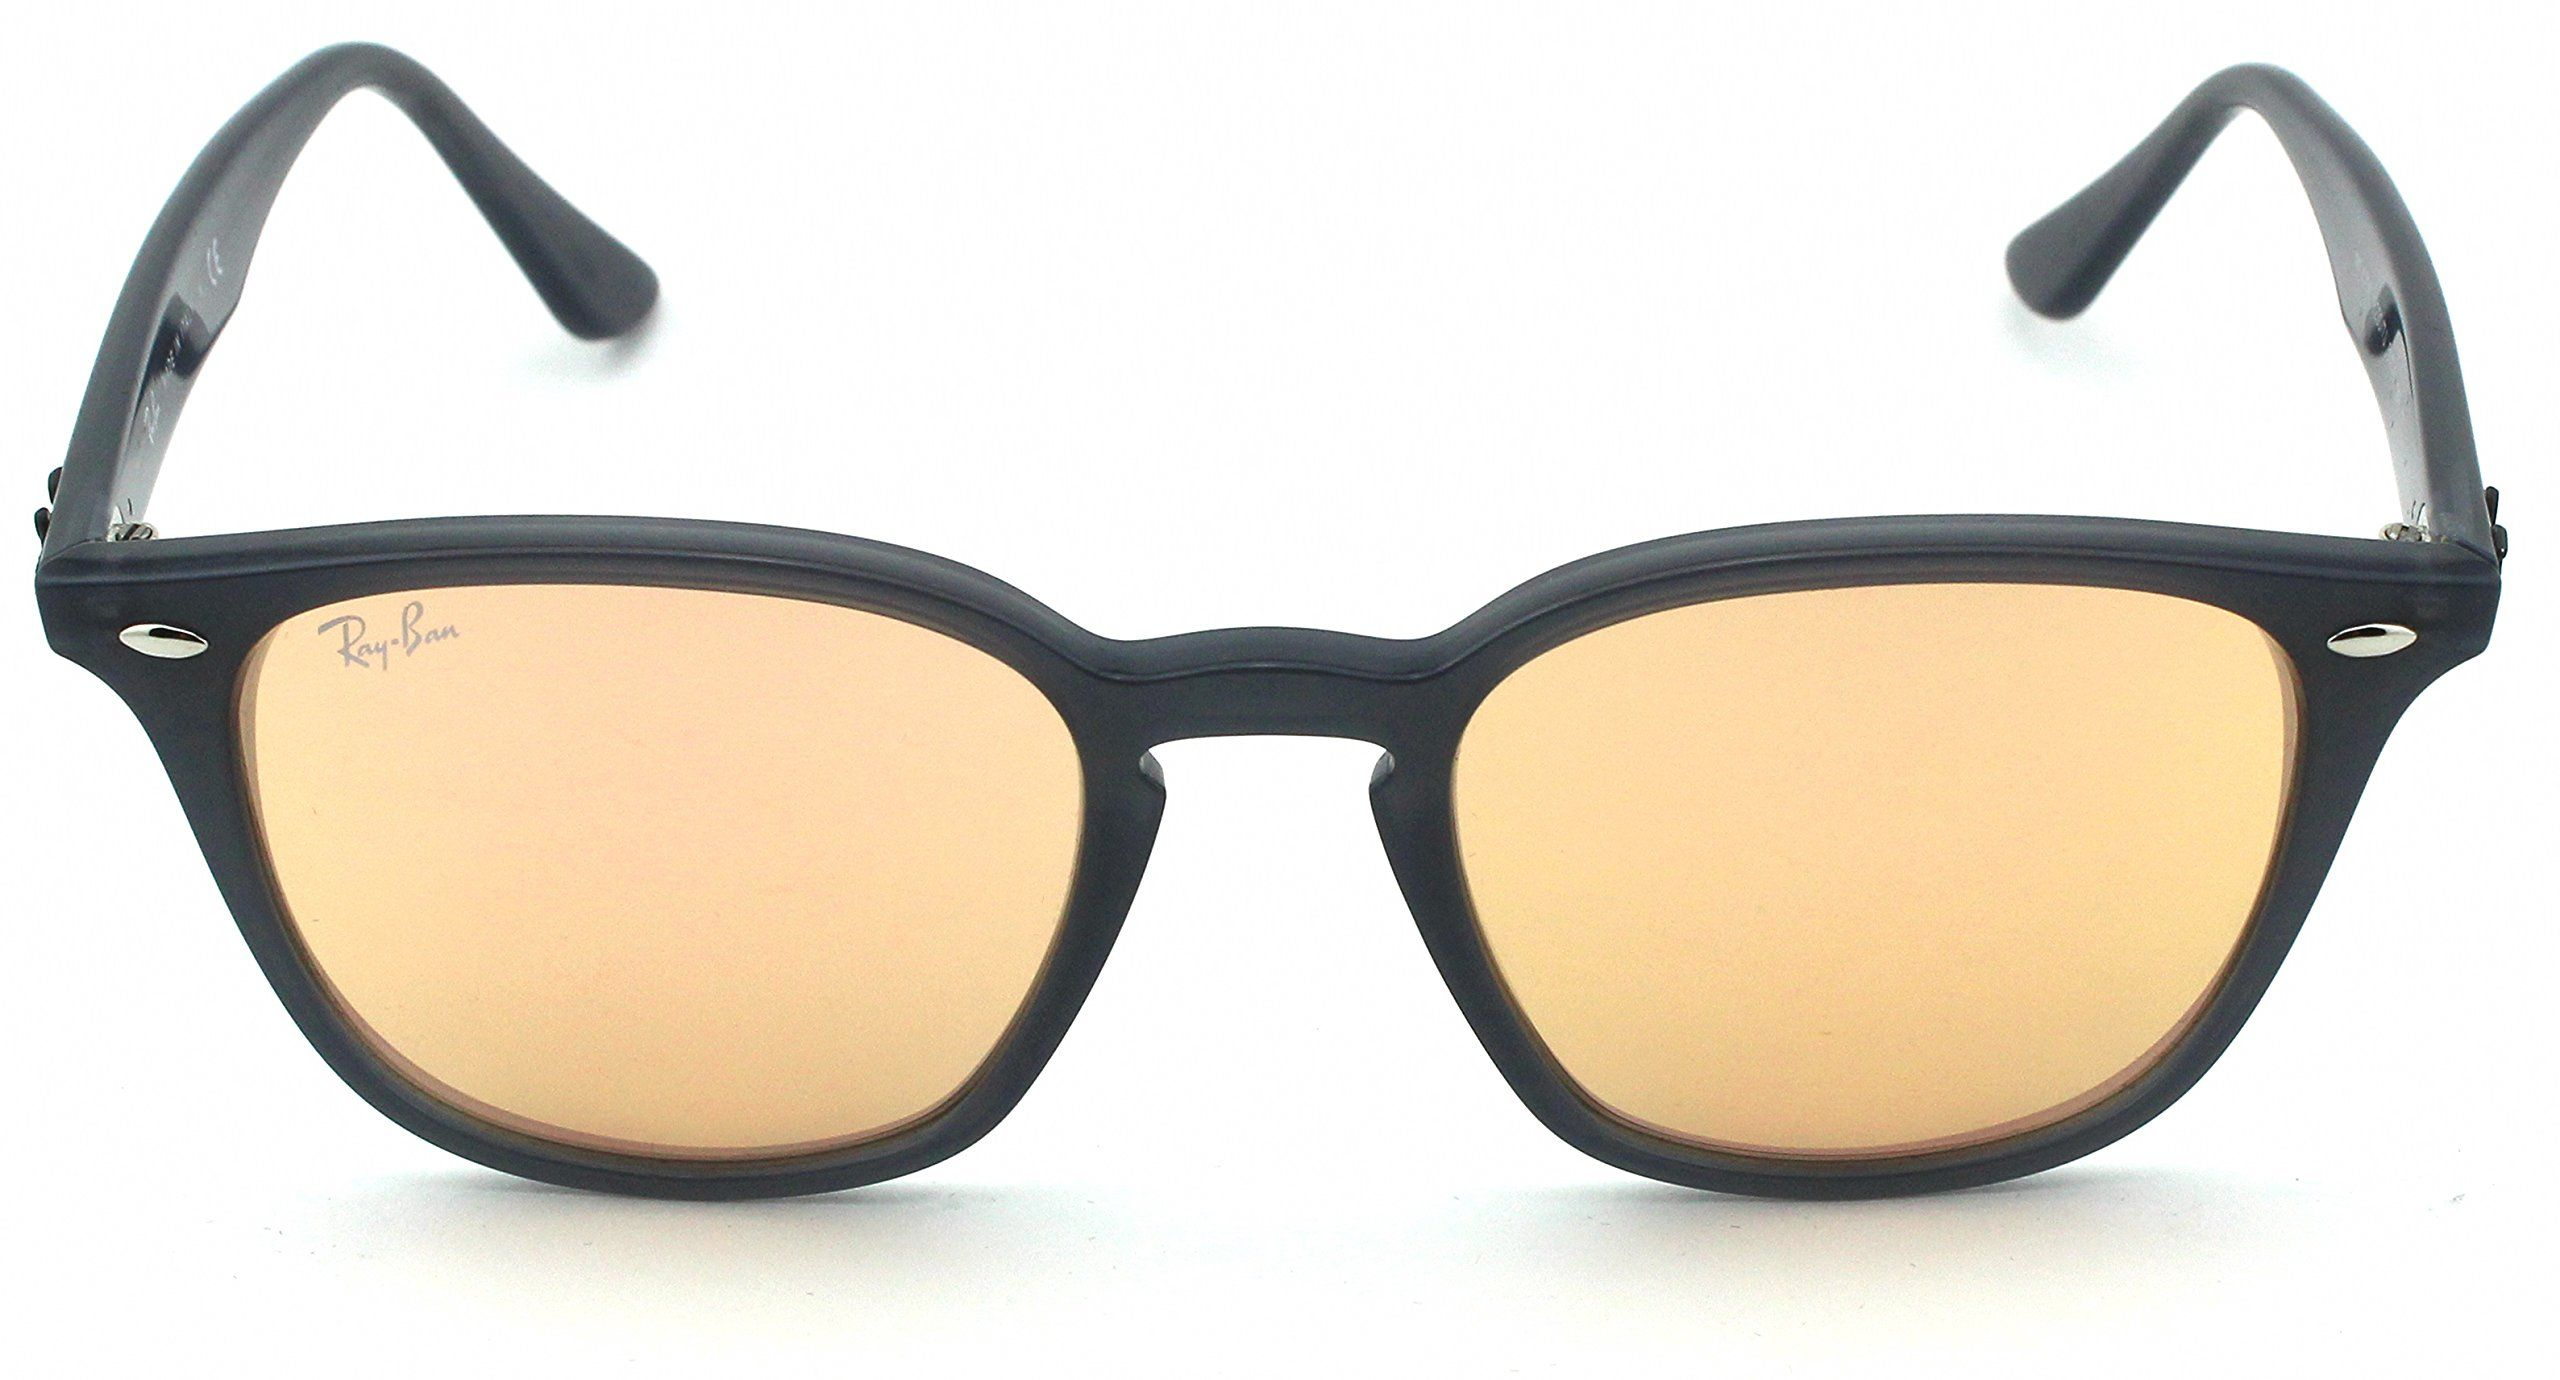 fdcabf0190 RayBan RB4258 New Style Unisex Sunglasses Opal Grey Lens Orange mirror Lens 62307J  50   You can find more details by visiting the image link.